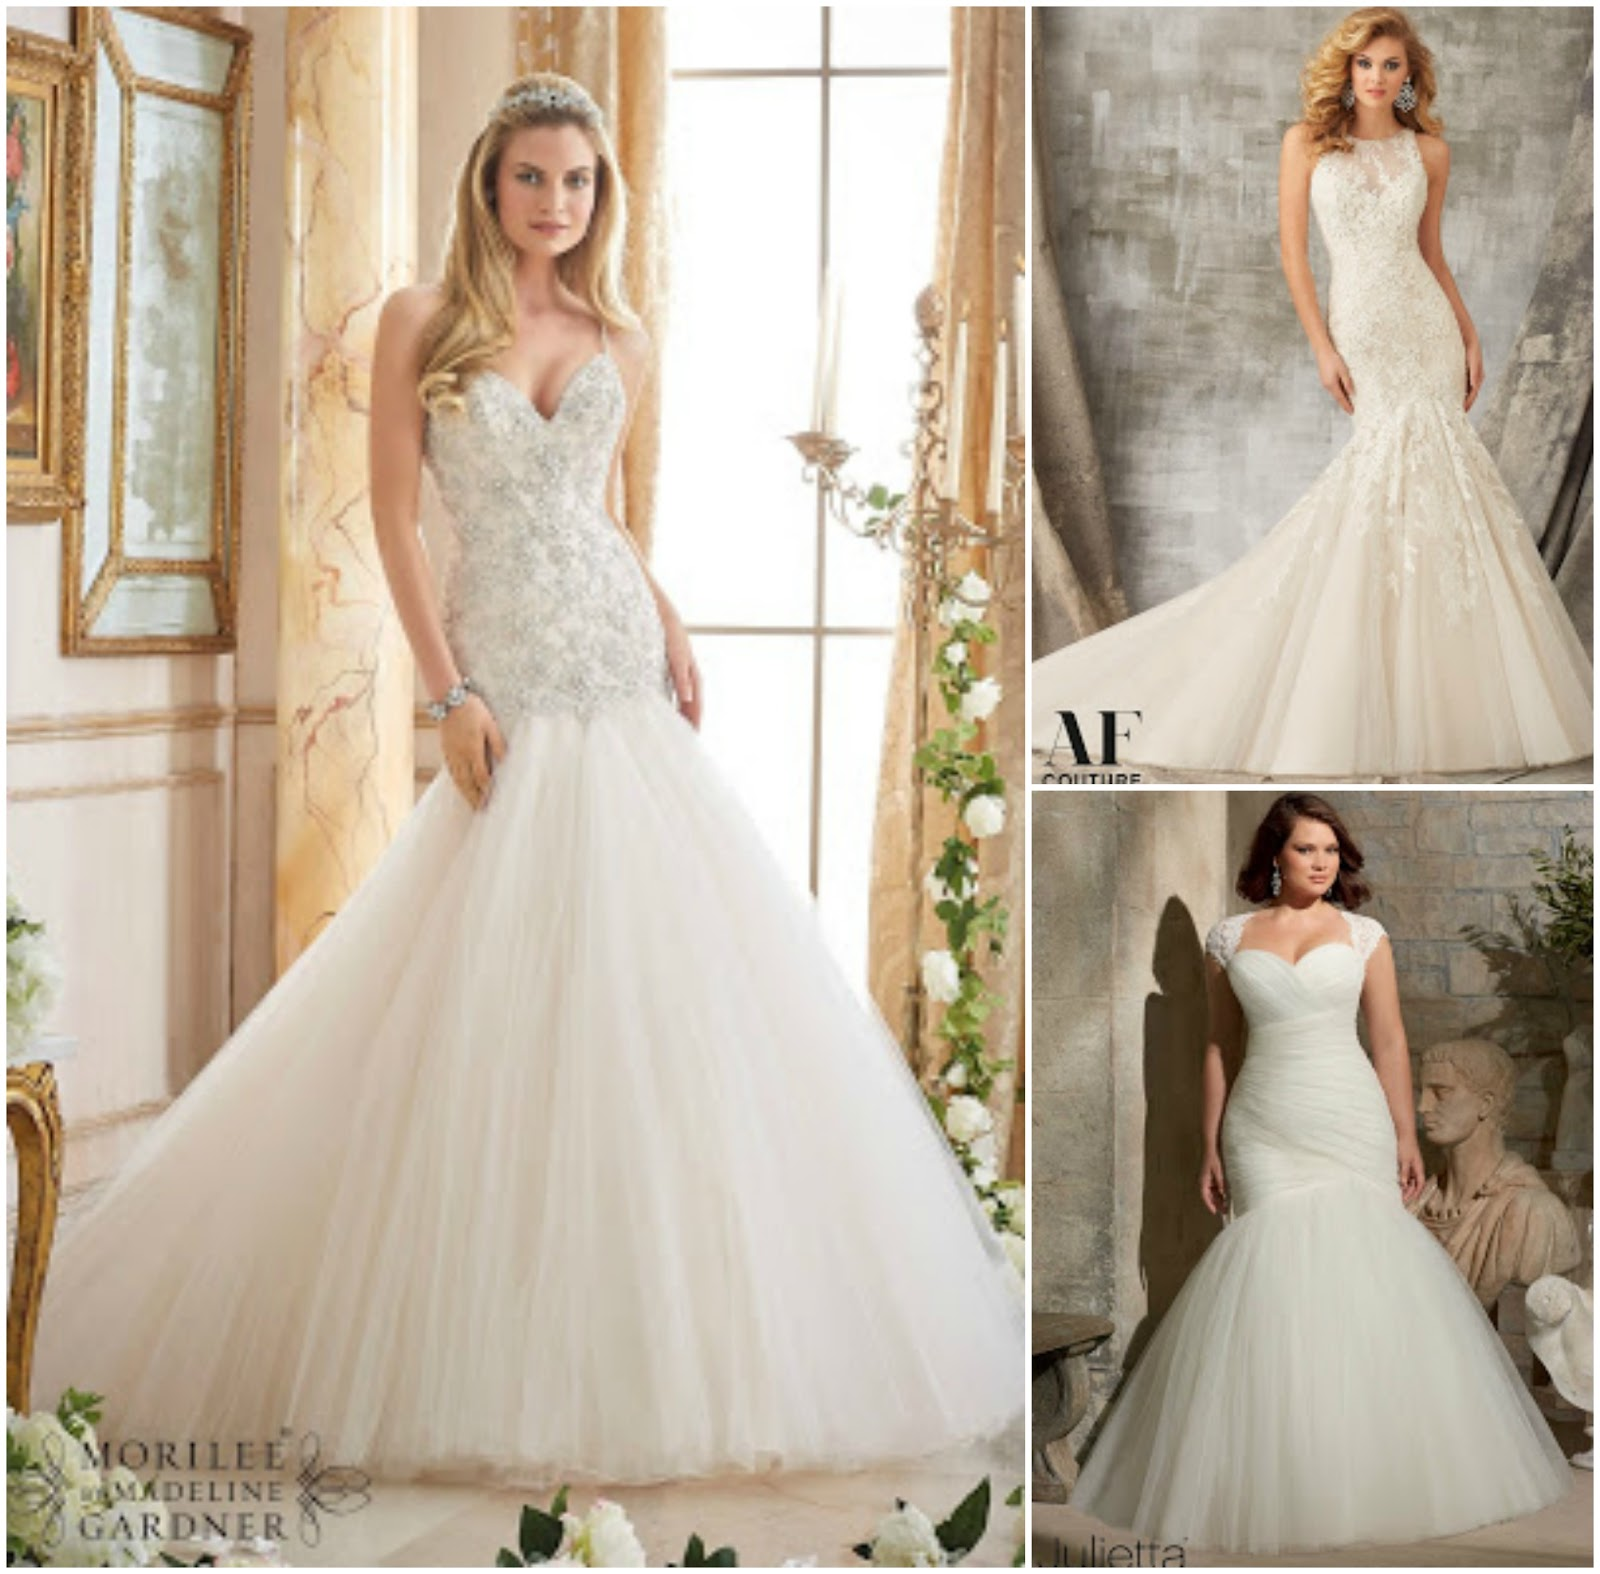 Brides of america online store stunning bridal fashions for Miami wedding dresses stores